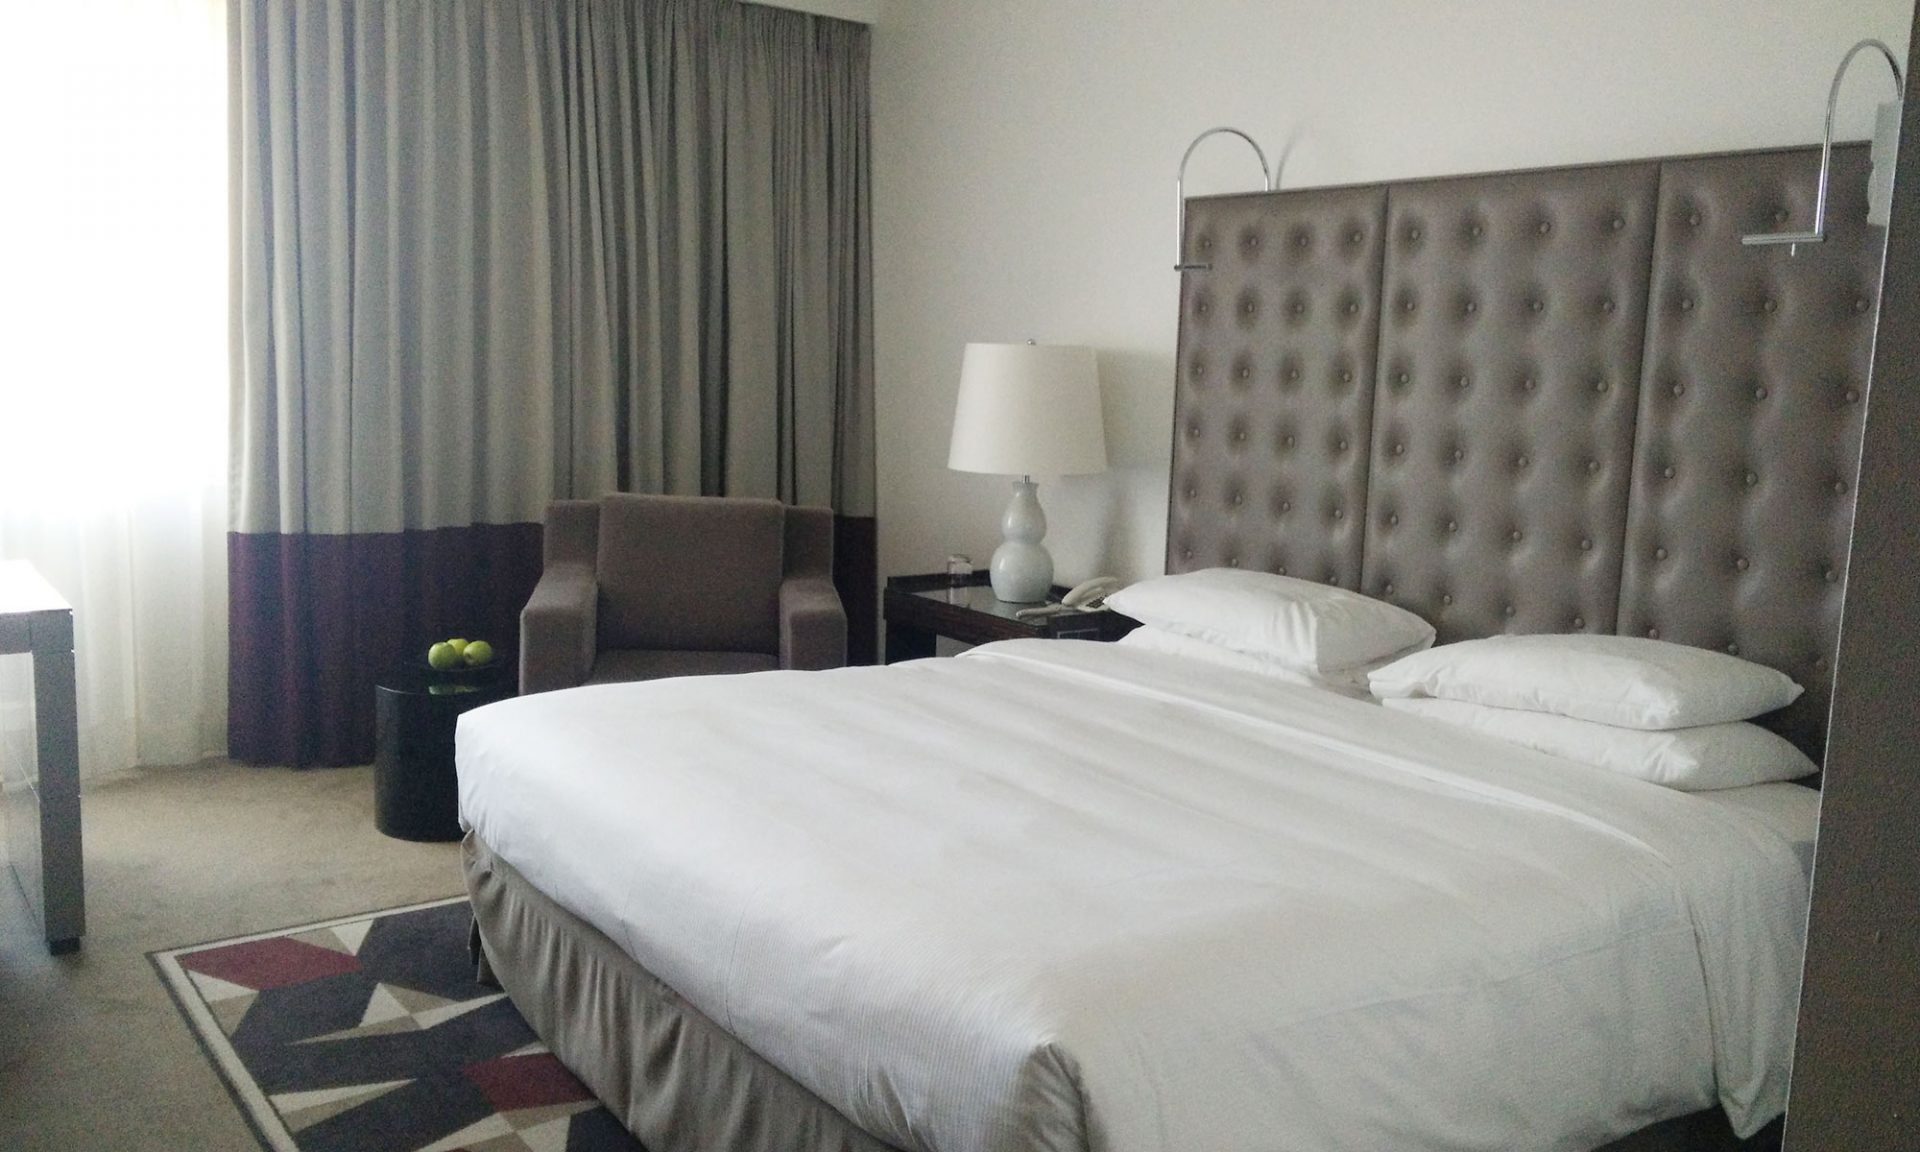 blog_coco_hyattregency10